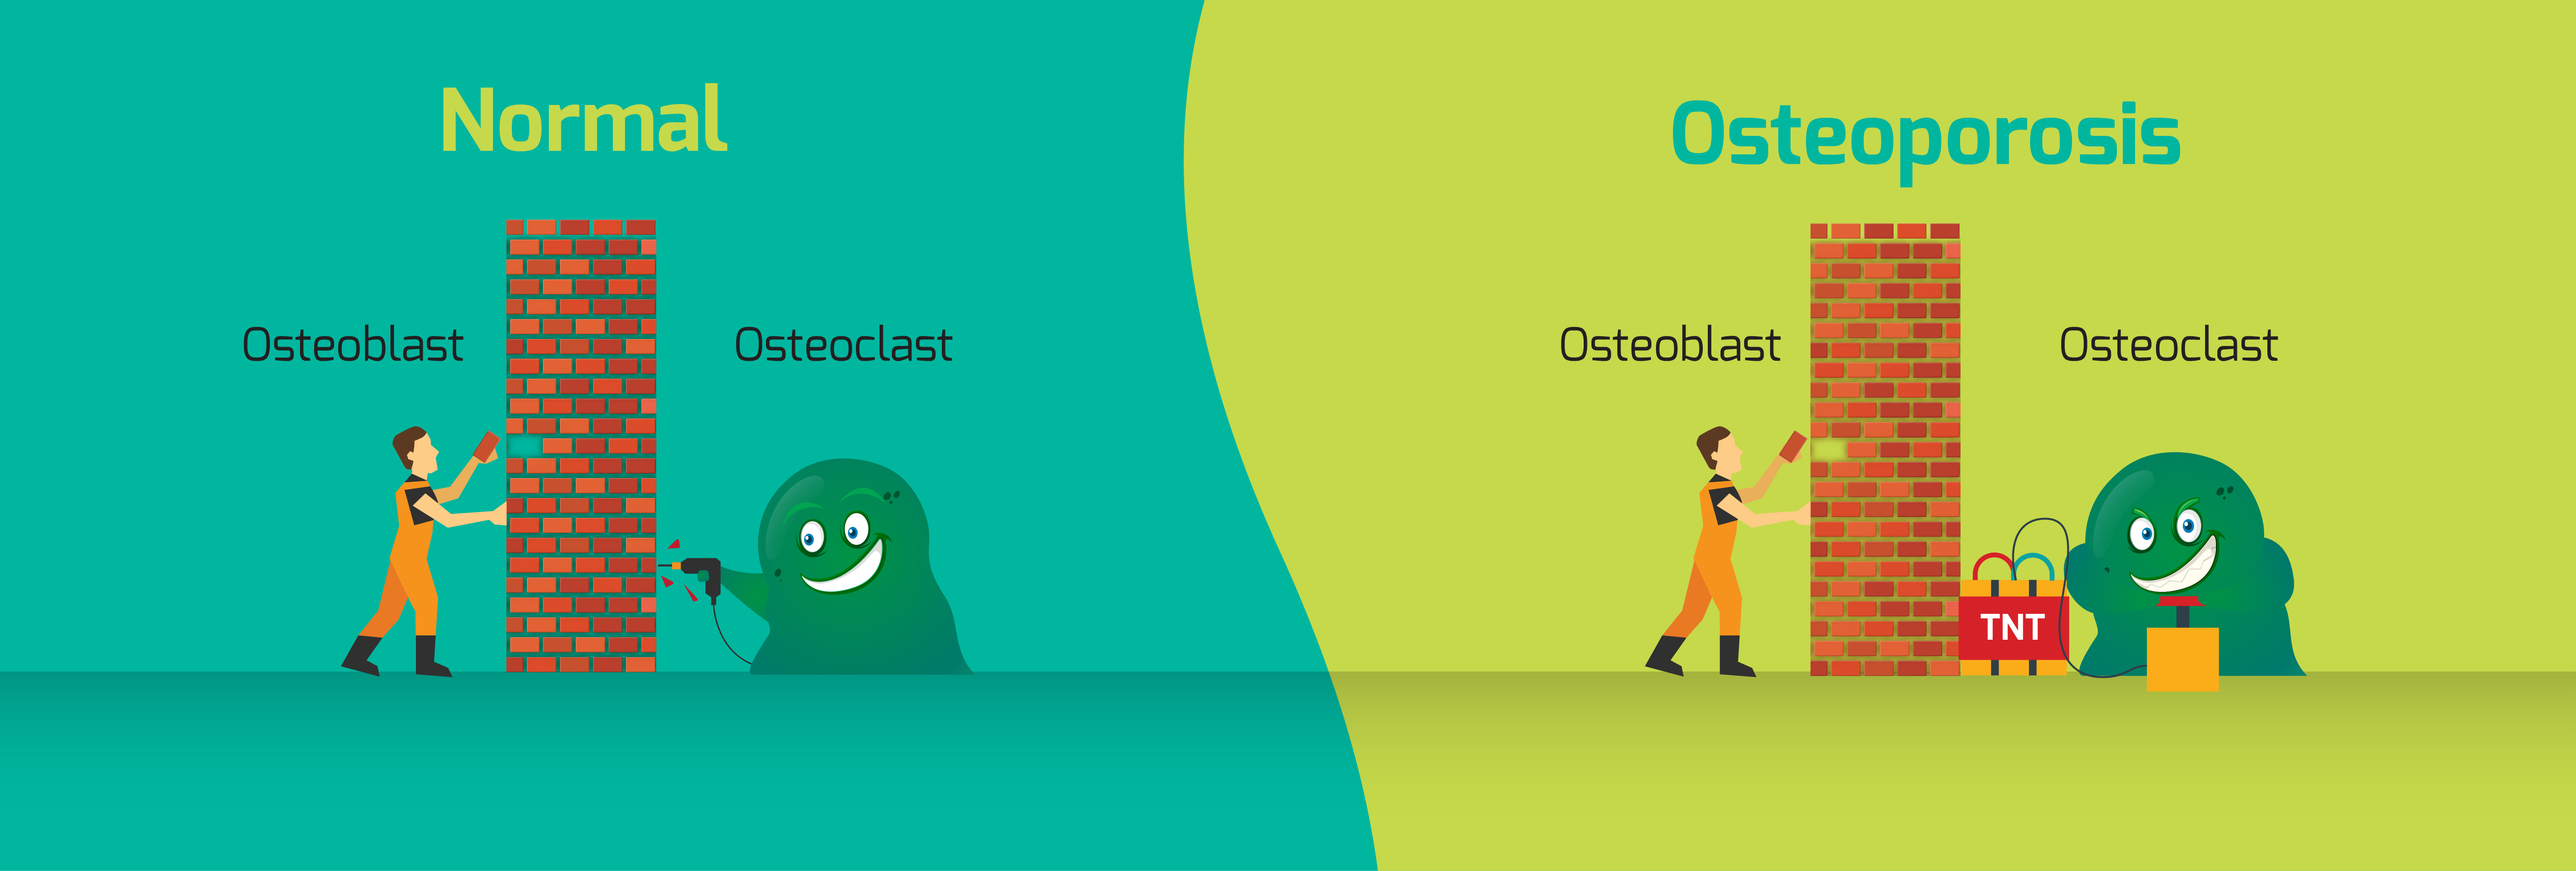 Taking part in World Osteoporosis Day